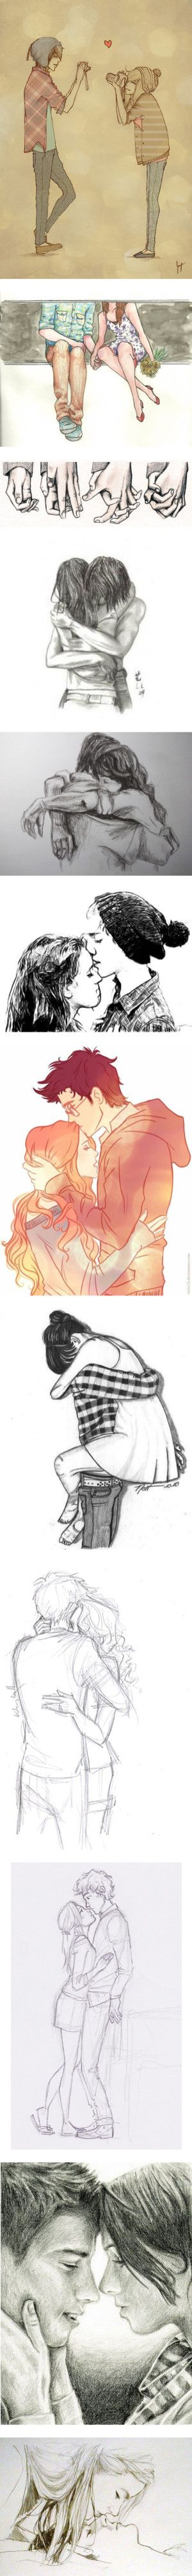 """""""Drawing LOVE!! 3"""" by belen-583 ❤ liked on Polyvore"""